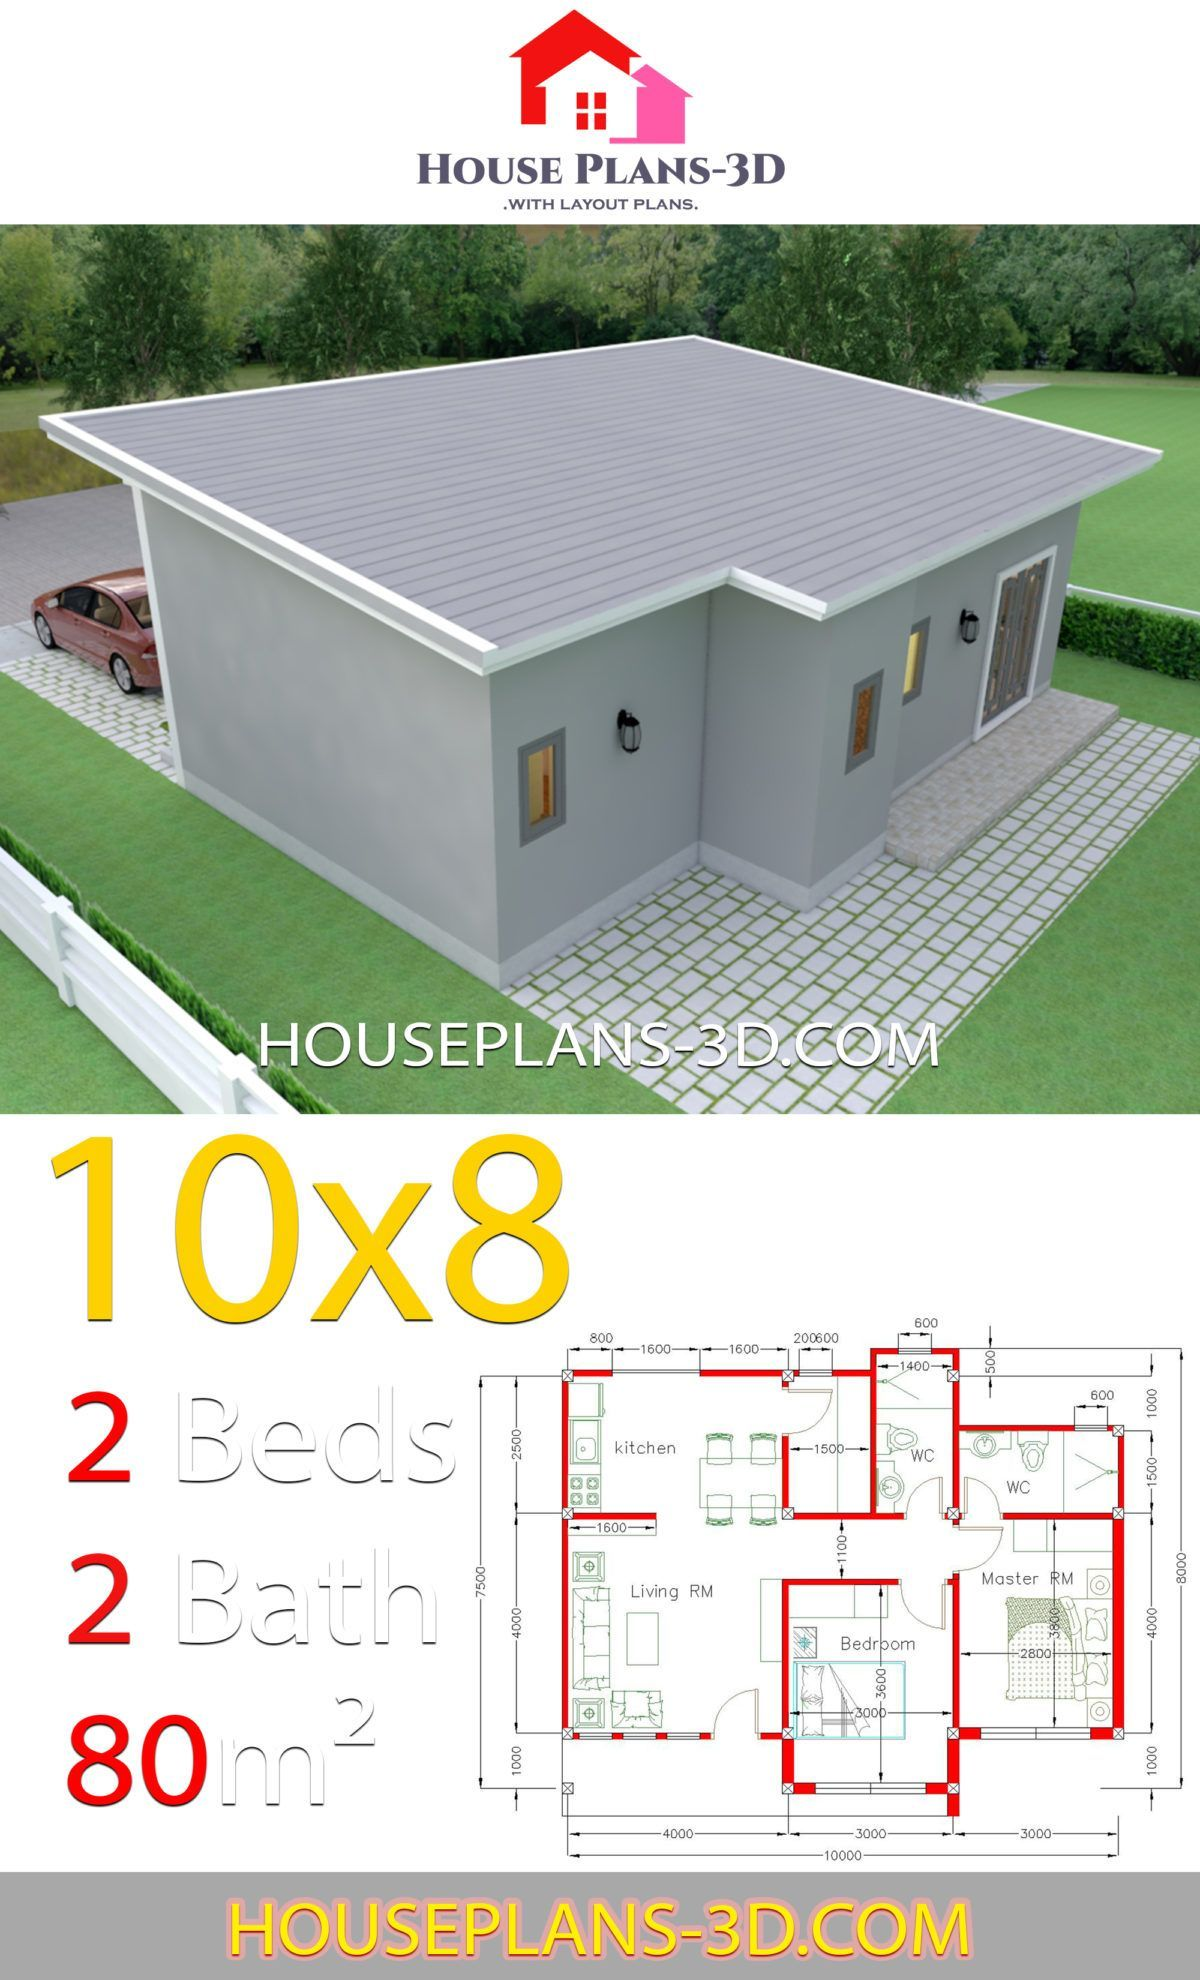 House Plans 10x8 With 2 Bedrooms Shed Roof House Plans 3d 10x8 Bedrooms House Plans Roof Shed Sh In 2020 Shed Roof Design House Plans Small House Design Plans